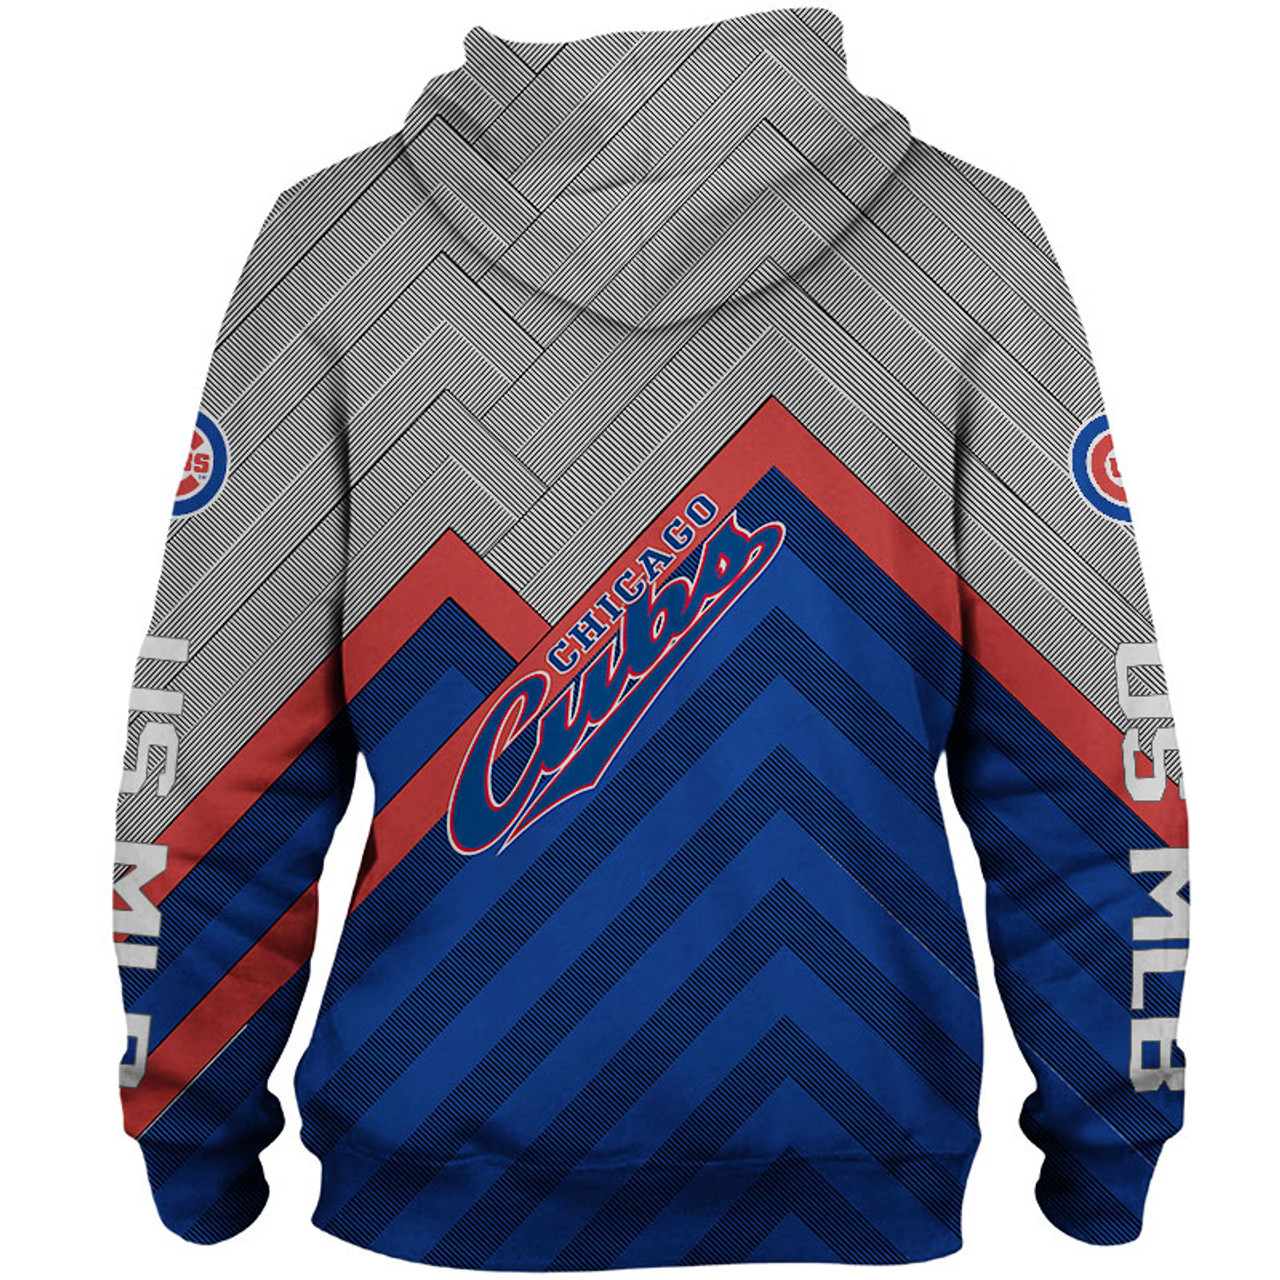 **(OFFICIAL-M.L.B.CHICAGO-CUBS-TEAM-PULLOVER-HOODIES/NICE-CUSTOM-DETAILED-3D-GRAPHIC-PRINTED/PREMIUM-ALL-OVER-DOUBLE-SIDED-PRINT/OFFICIAL-CUBS-TEAM-COLORS & CLASSIC-CUBS-3D-GRAPHIC-LOGOS/PREMIUM-WARM-PULLOVER-POCKET-M.L.B.HOODIES)**